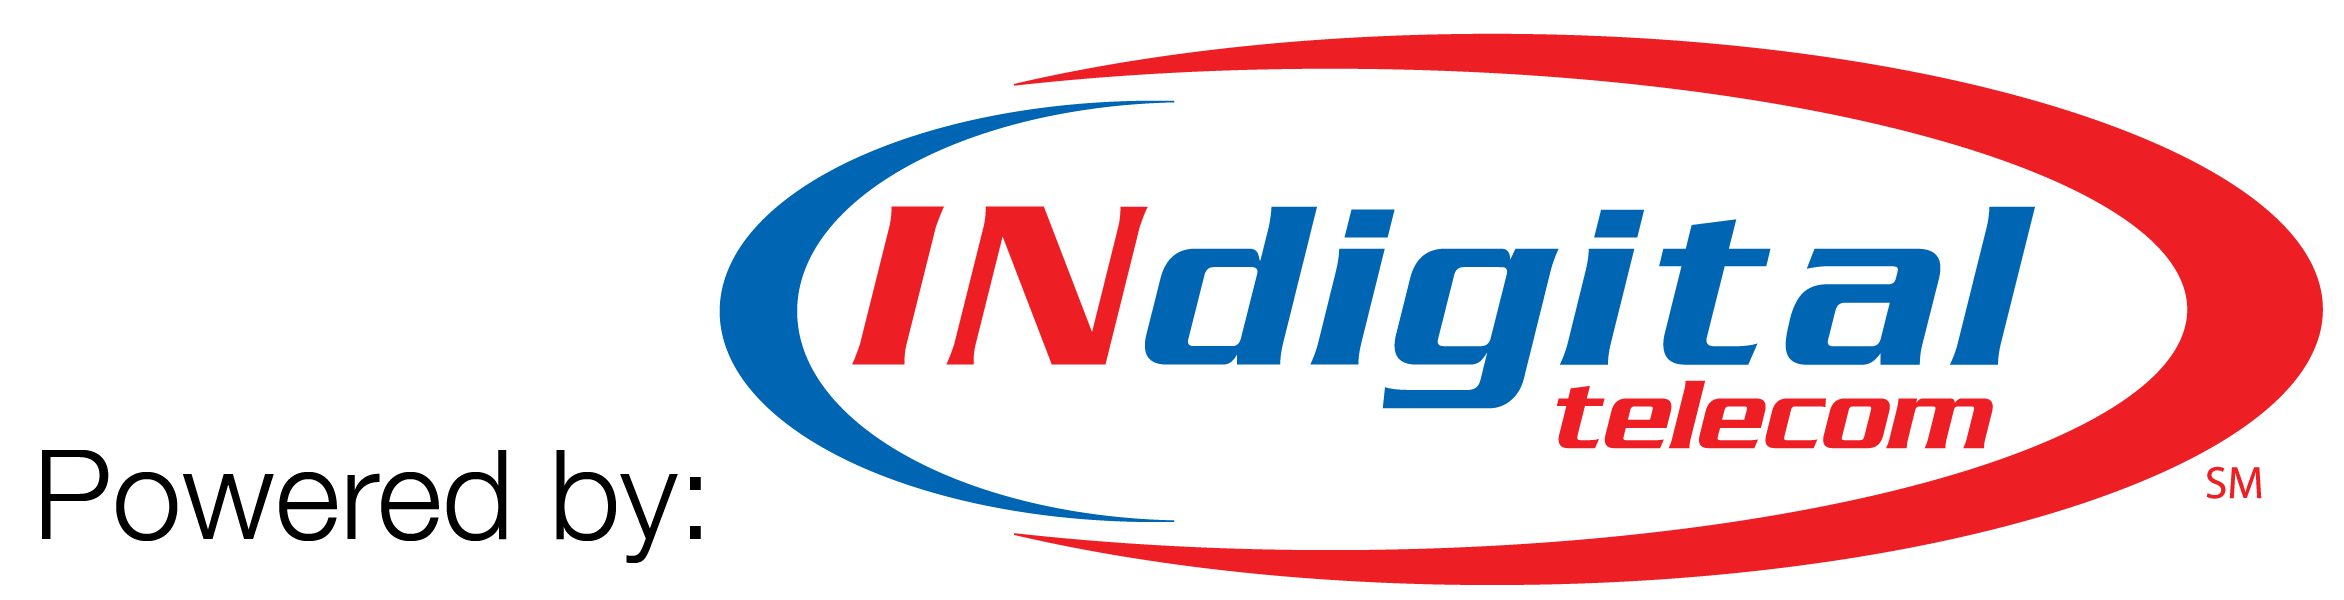 Powered by INdigital